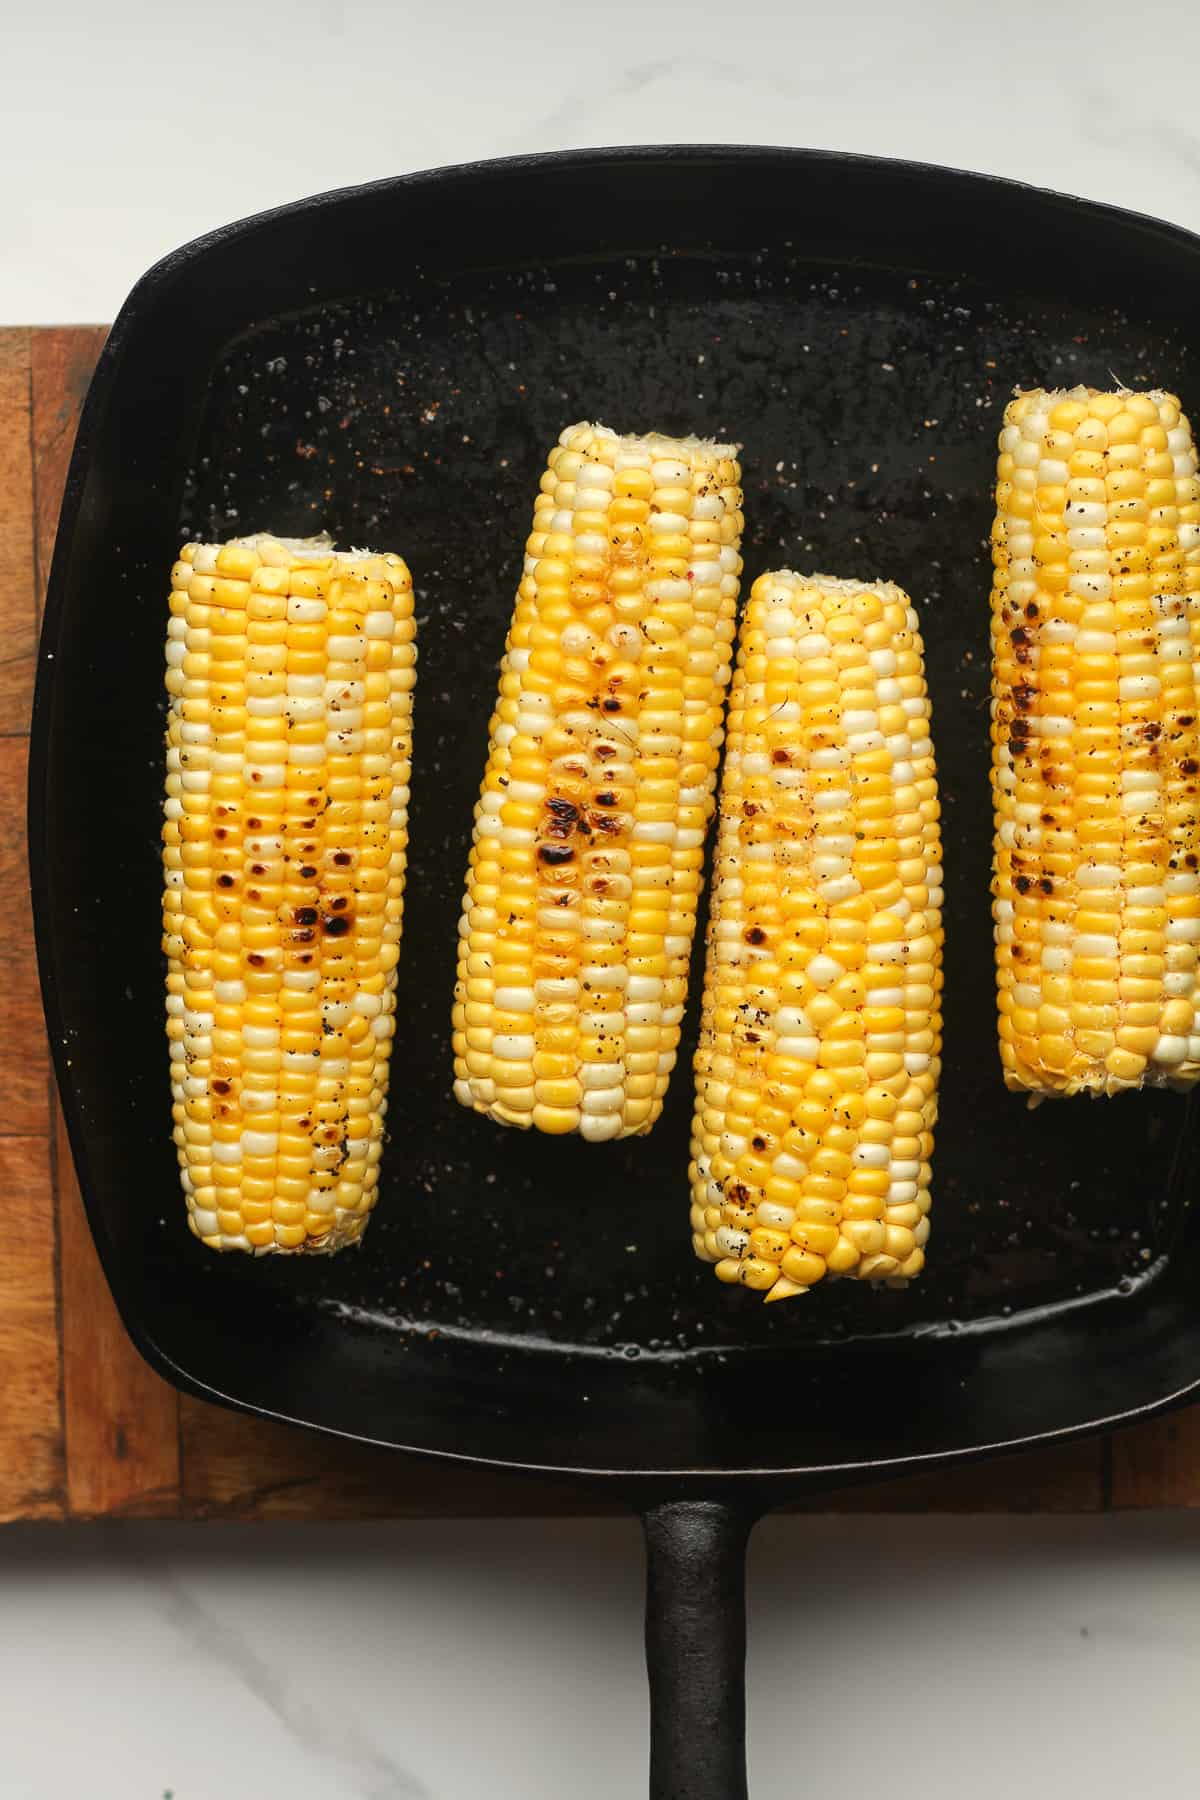 Grilled corn in a cast iron skillet.